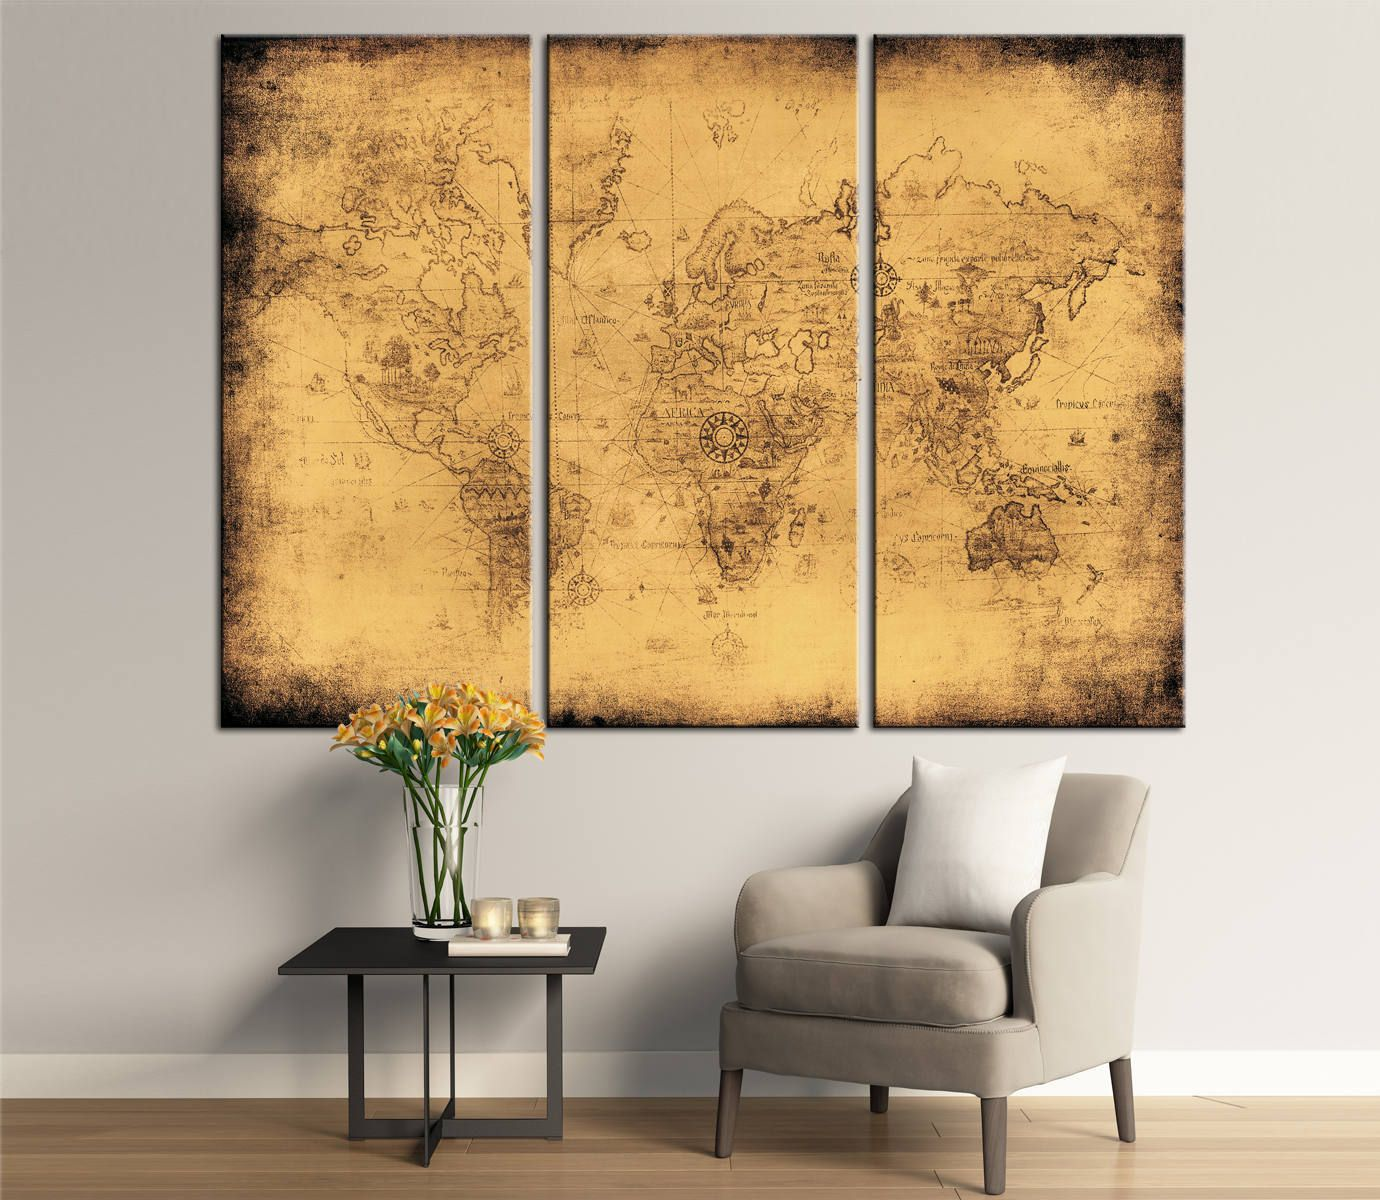 Large Ancient Map of the World. Canvas Panels Set, Ancient World Map ...